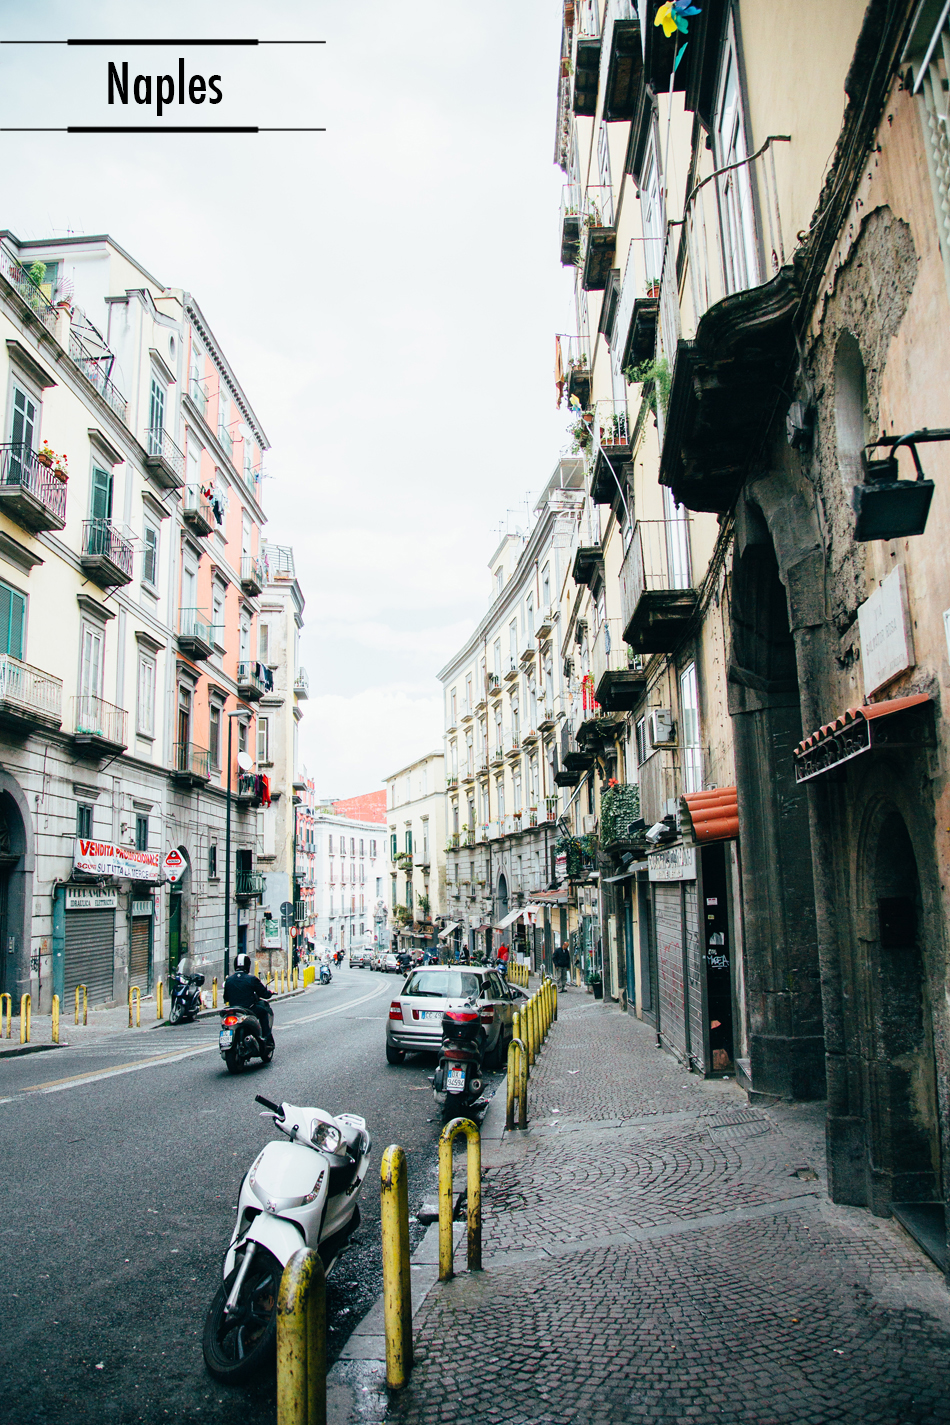 Naples by Paige Jones